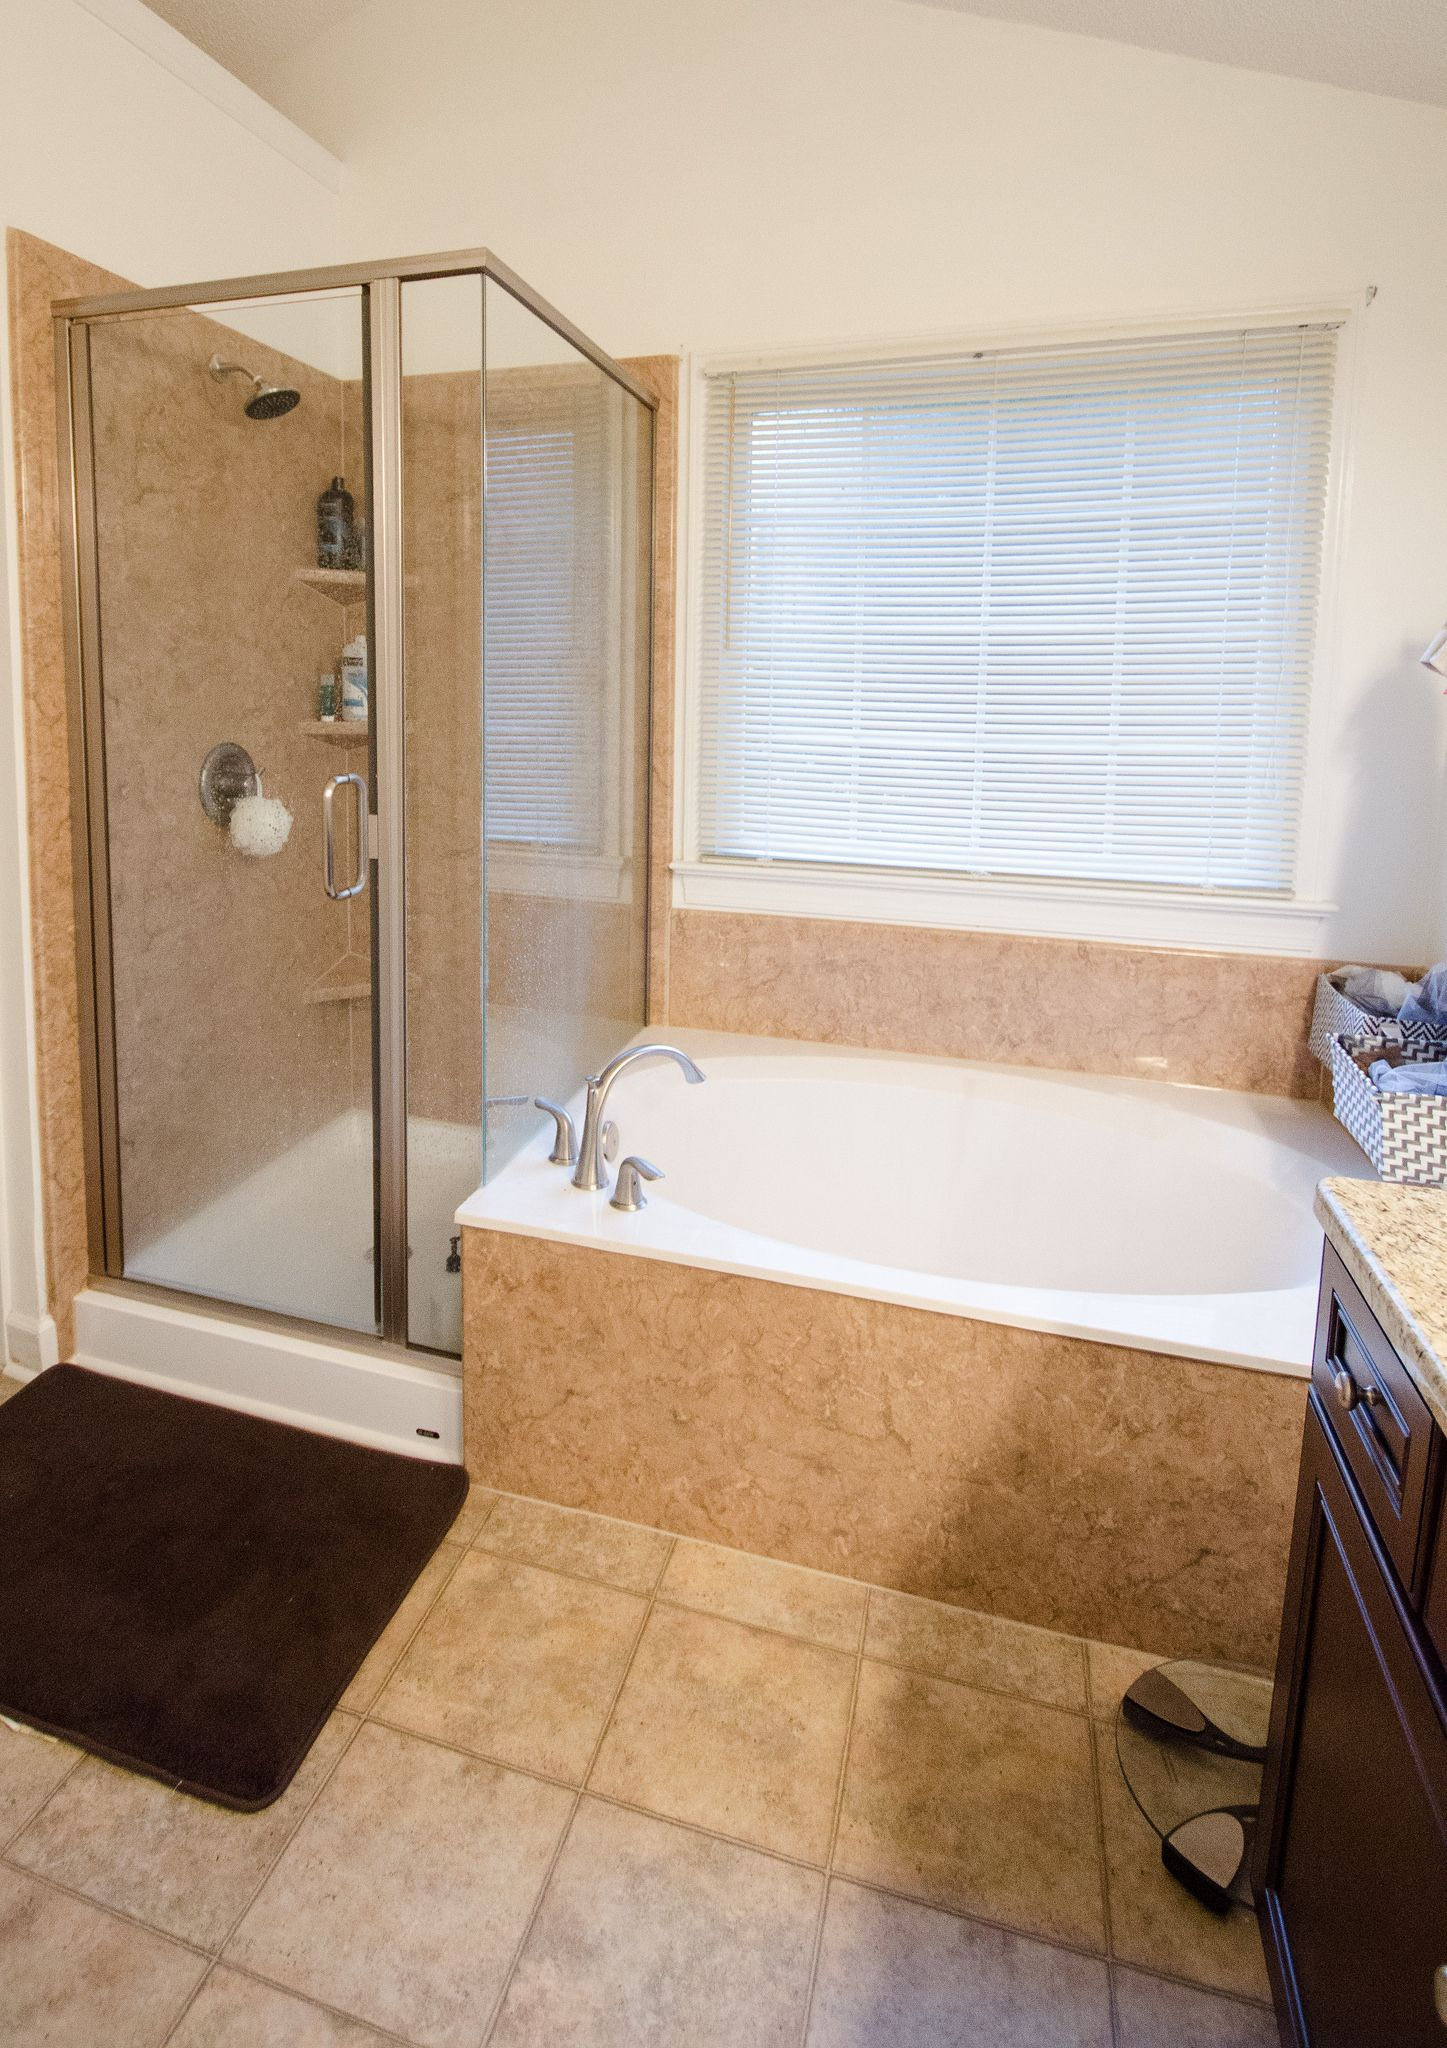 Bathroom Remodel By Re Bath Of The Triad New Tile Flooring Bathtub Replacement